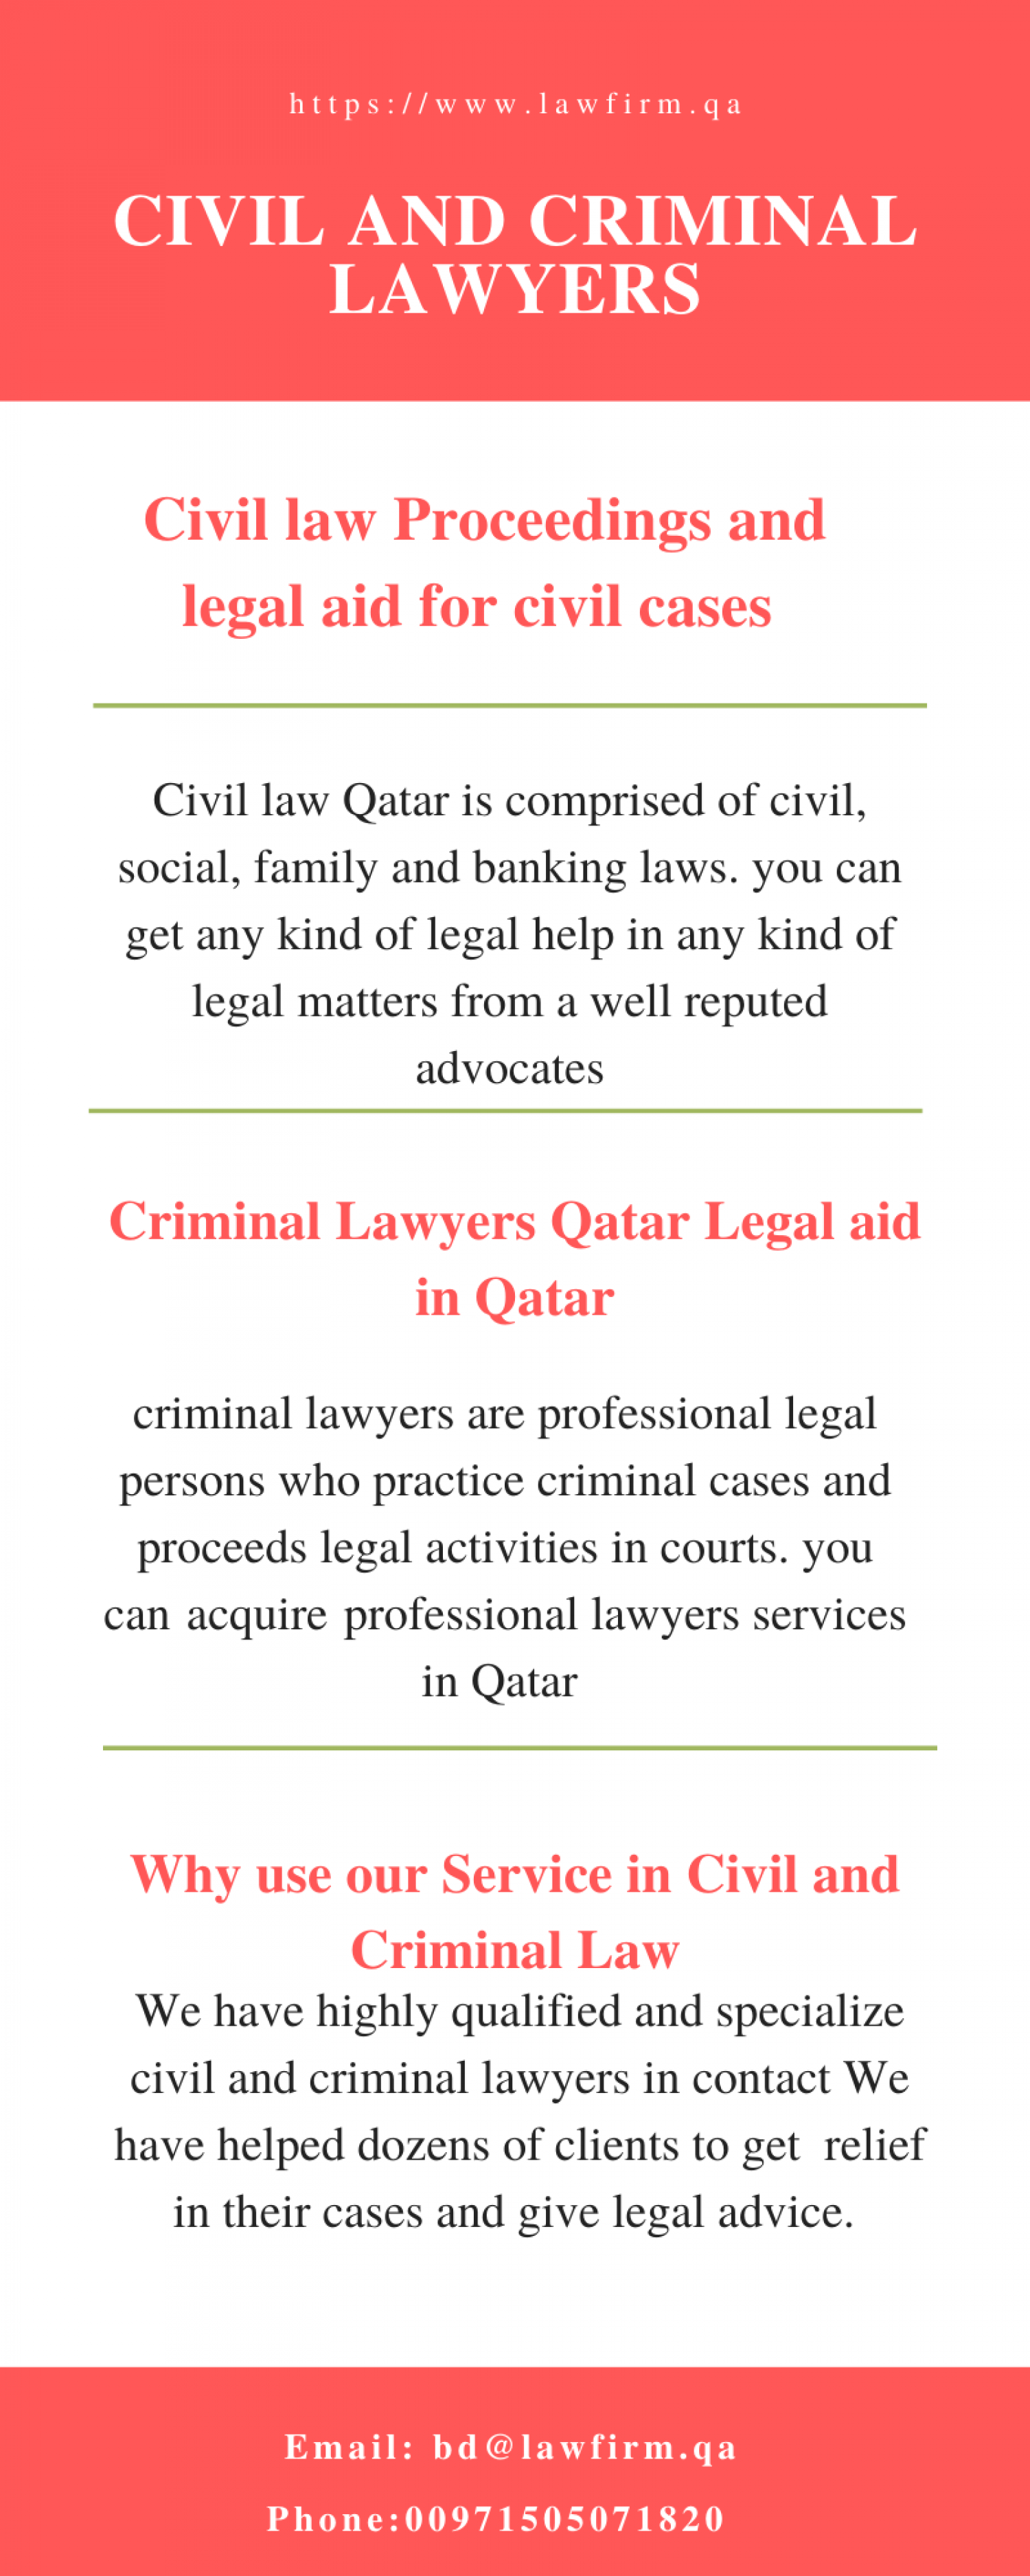 Civil and Criminal Lawyers Qatar Infographic